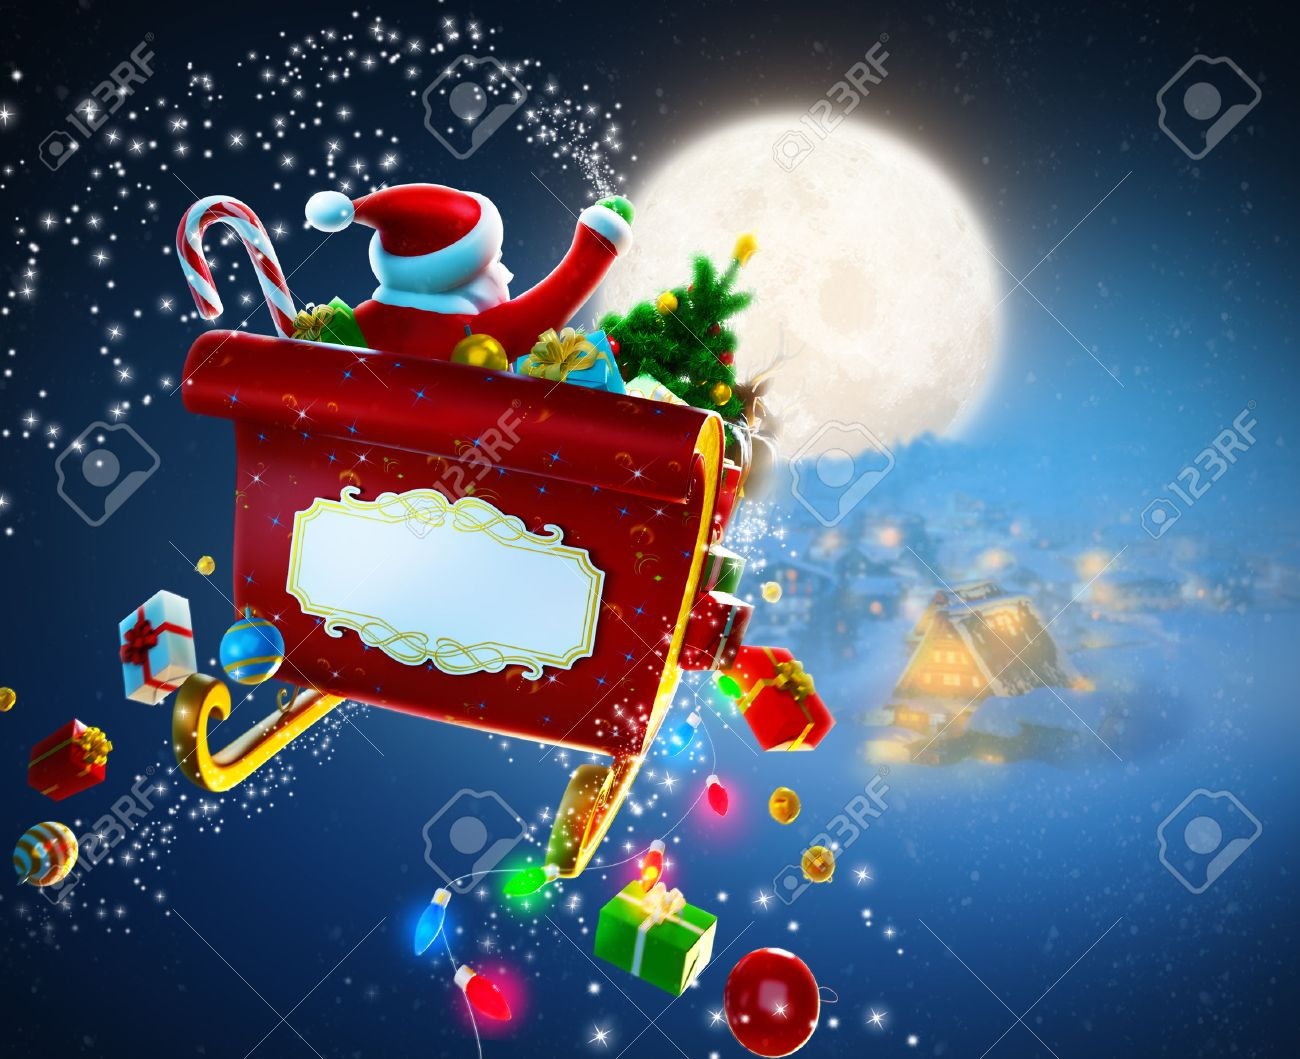 Christmas background  Santa Claus flies by sleigh above houses Stock Photo - 22478779